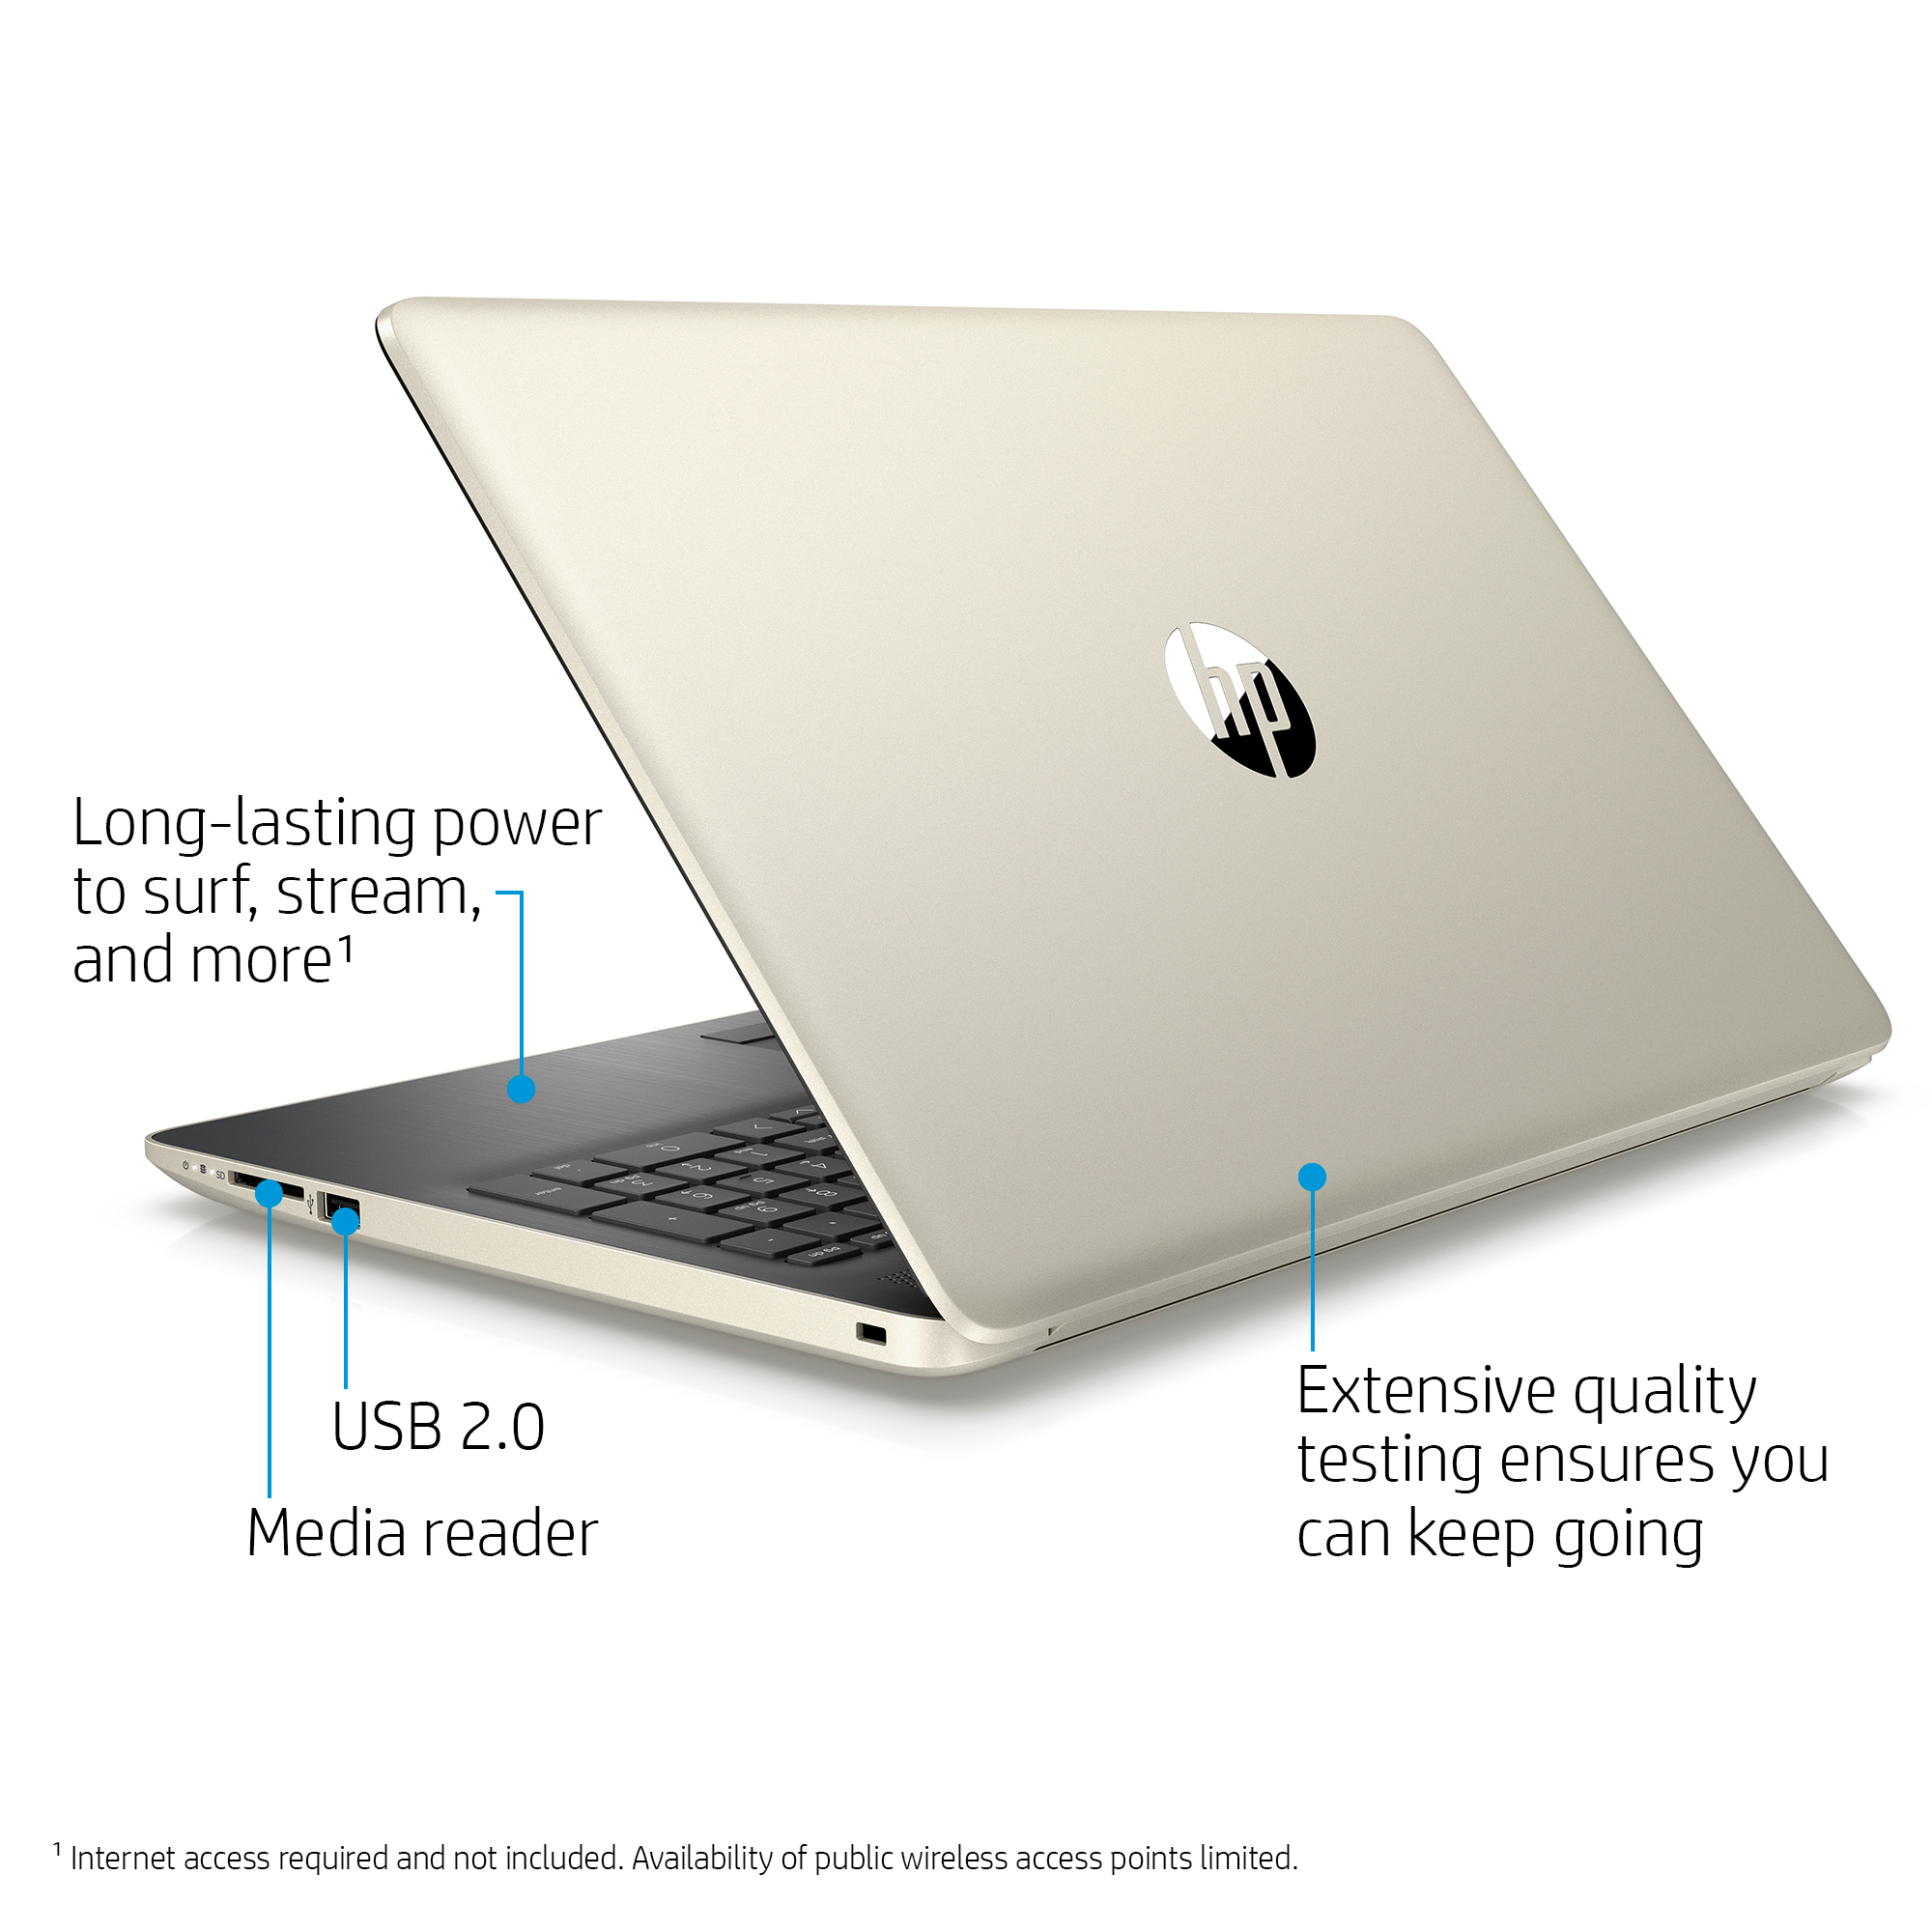 "HP 15 Laptop Bundle 15.6"" , AMD Dual-Core E2-9000e, 500GB HDD, 4GB SDRAM, Windows 10, Wireless Mouse X3000, Neoprene Sleeve - Twilight Blue - 15-db0081wm"